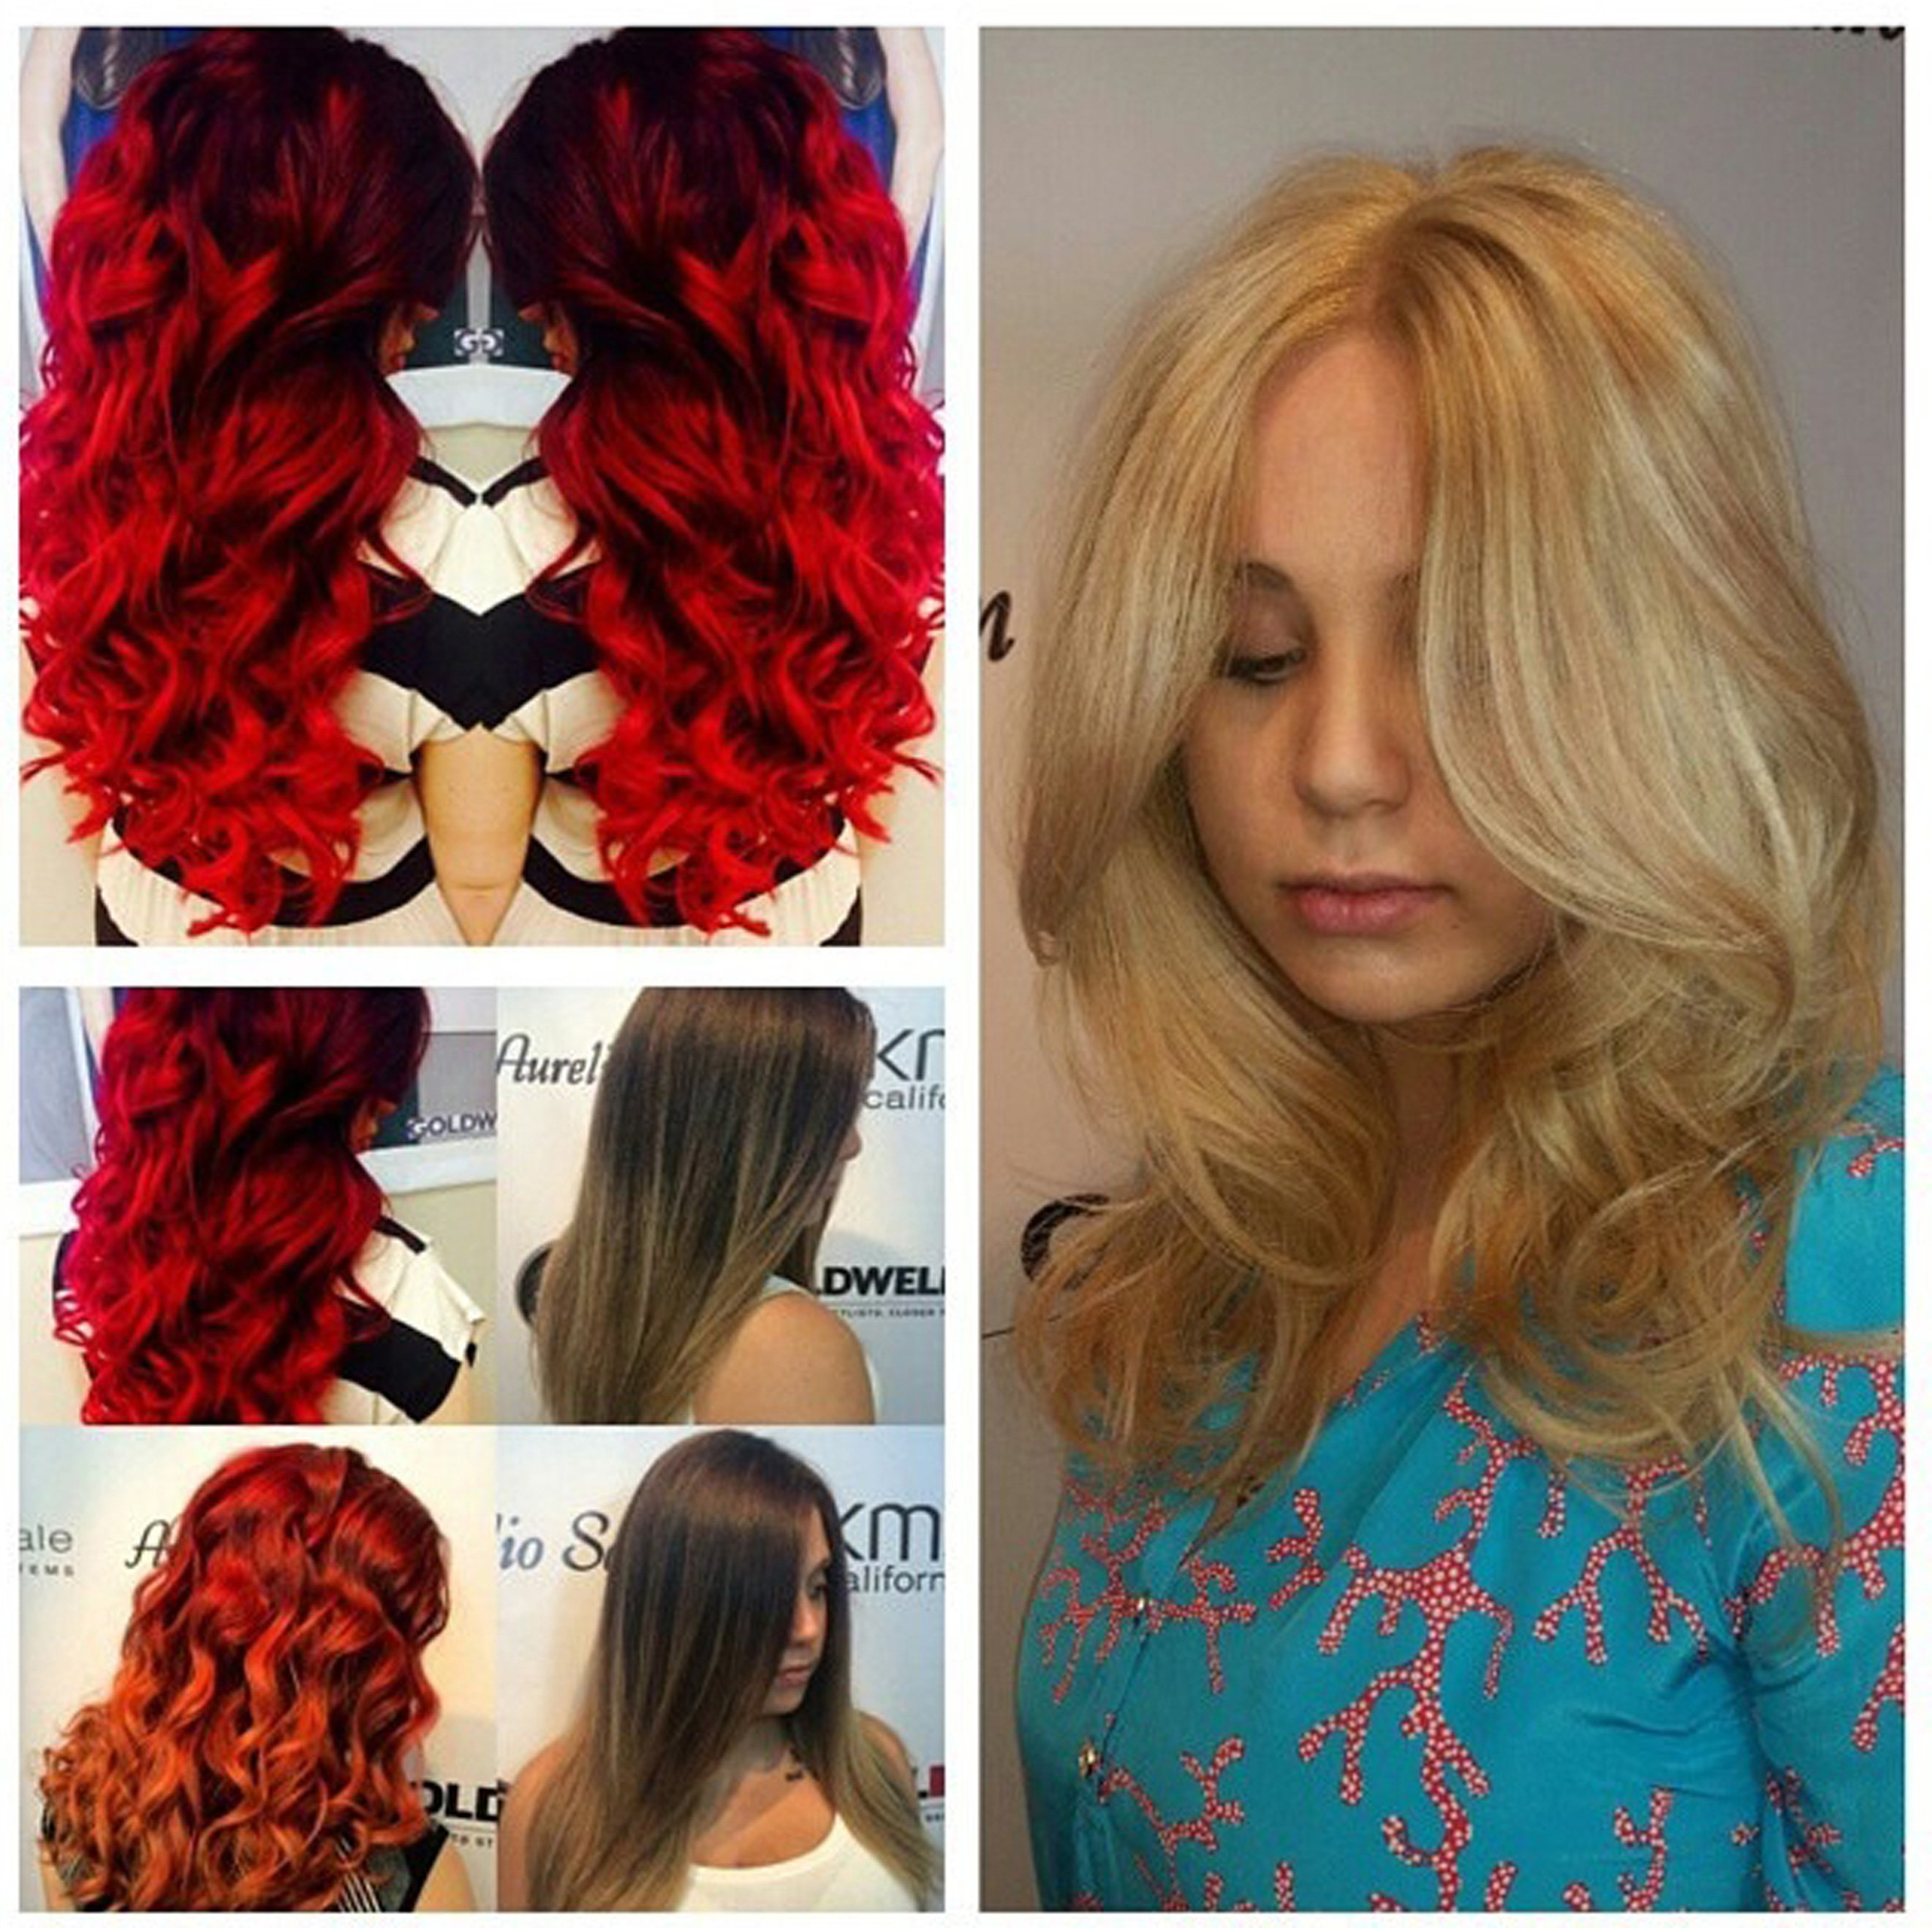 HOW-TO: Going From an Intense/Vibrant Haircolor to a Neutral Tone